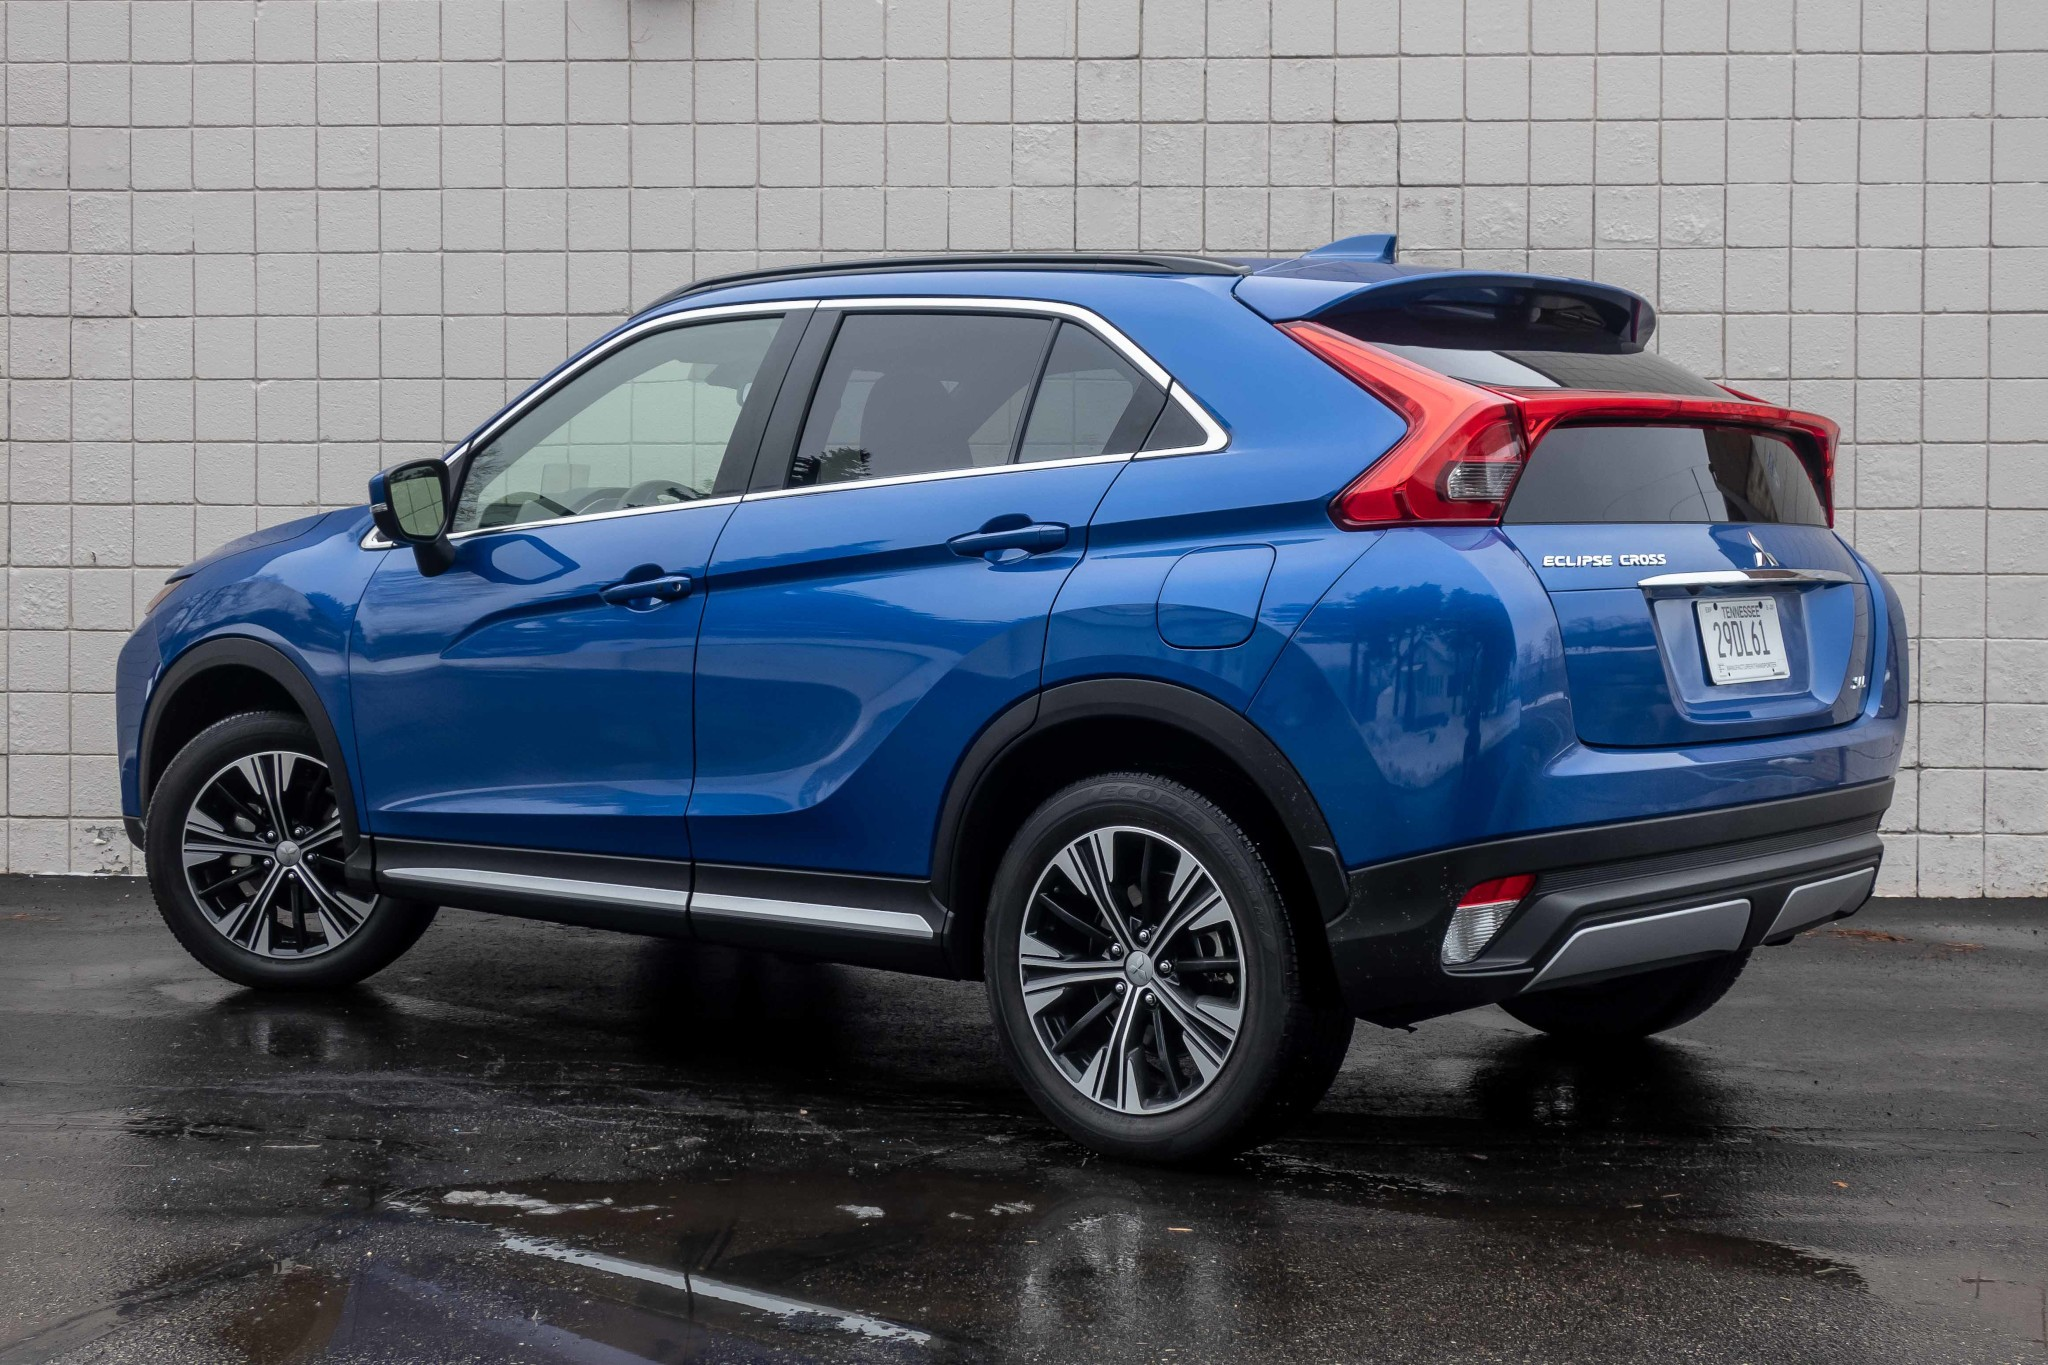 mitsubishi-eclipse-cross-2020-06-angle--blue--exterior--rear.jpg